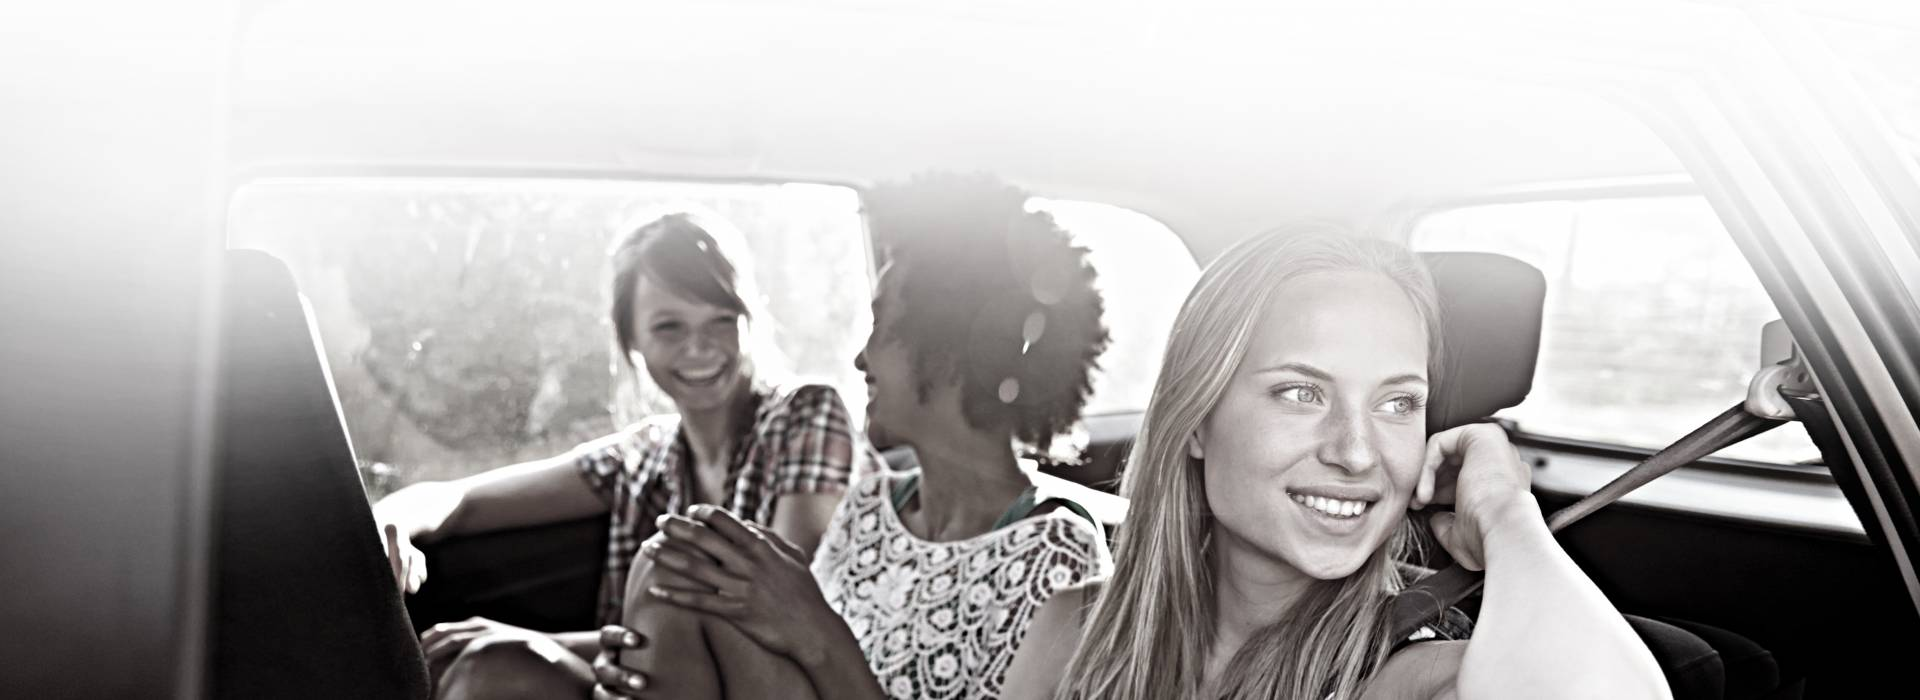 A woman sitting in the backseat of a car looks out a window while her friends cheerfully chat.